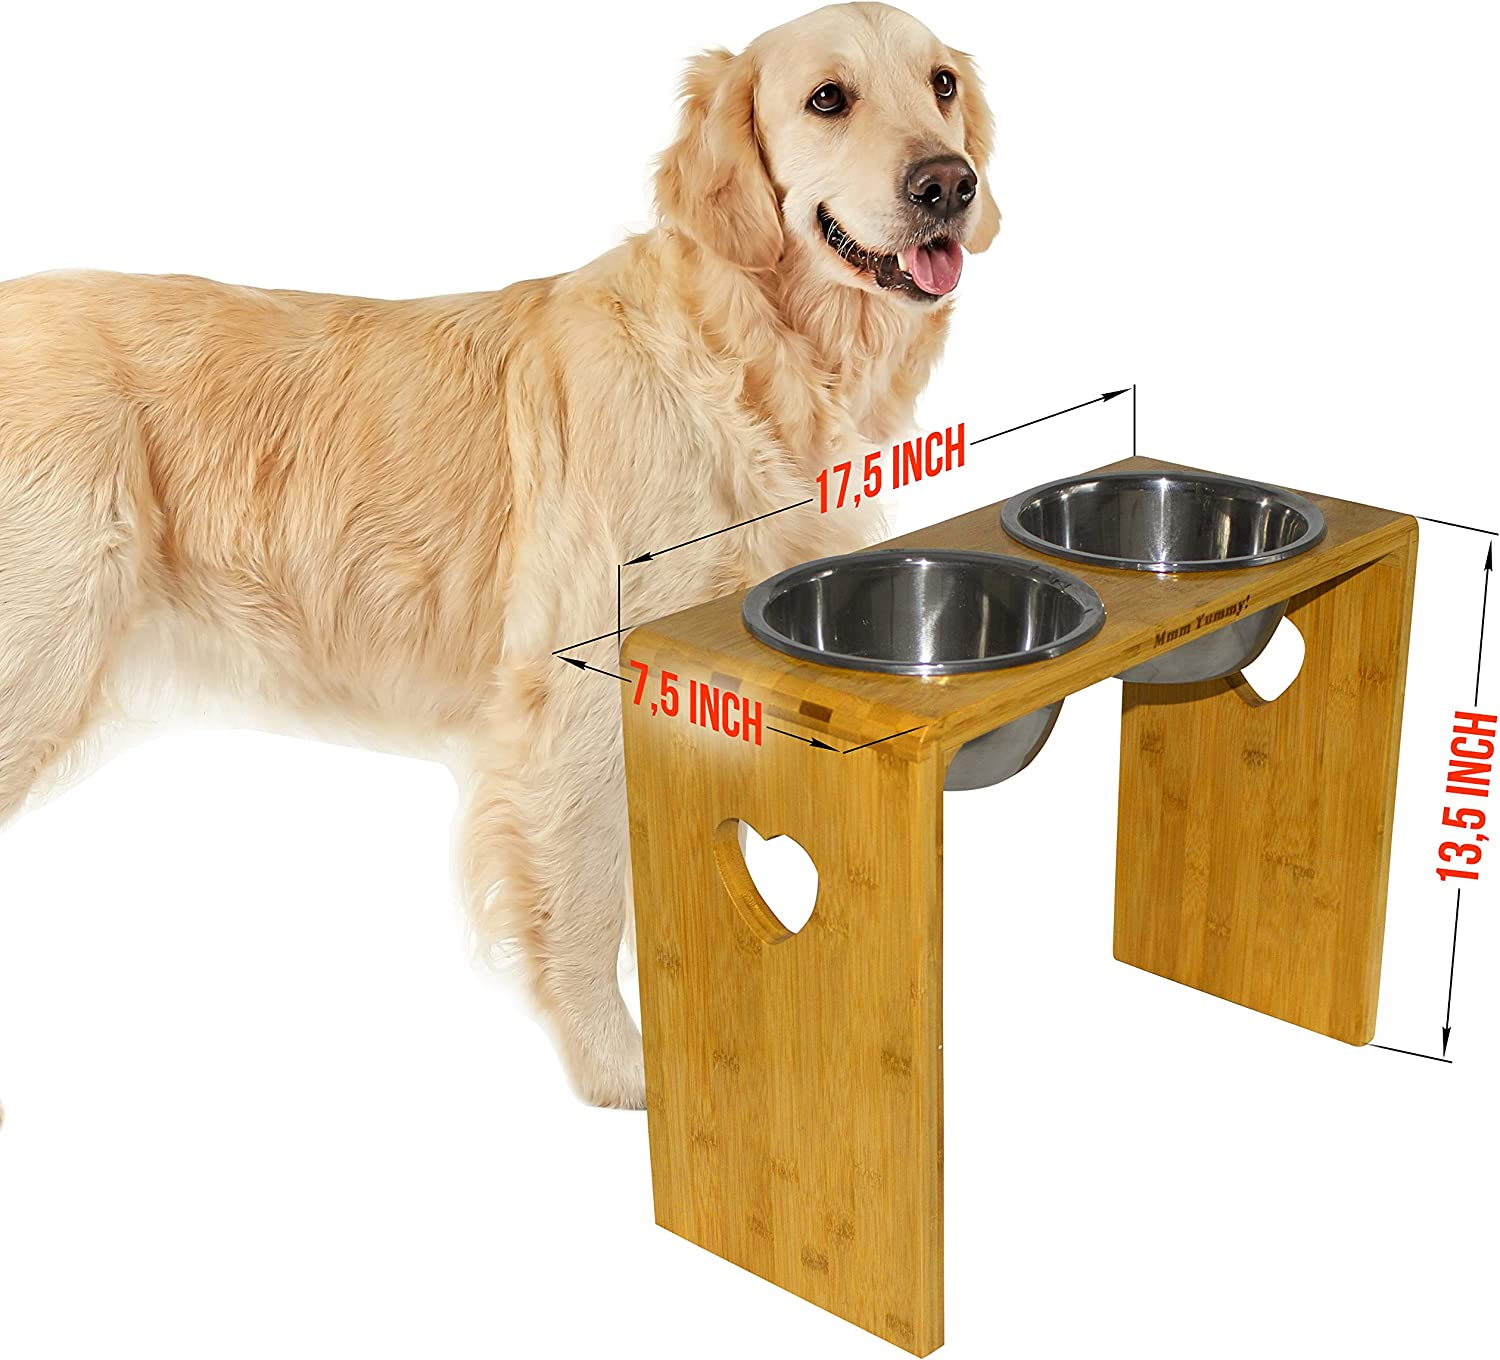 MMM YUMMY Raised dog bowls - Elevated Pet Feeder for Medium and Big Dogs - Made of Eco-Friendly Bamboo with 2 Removable Stainless Steel Food Bowls